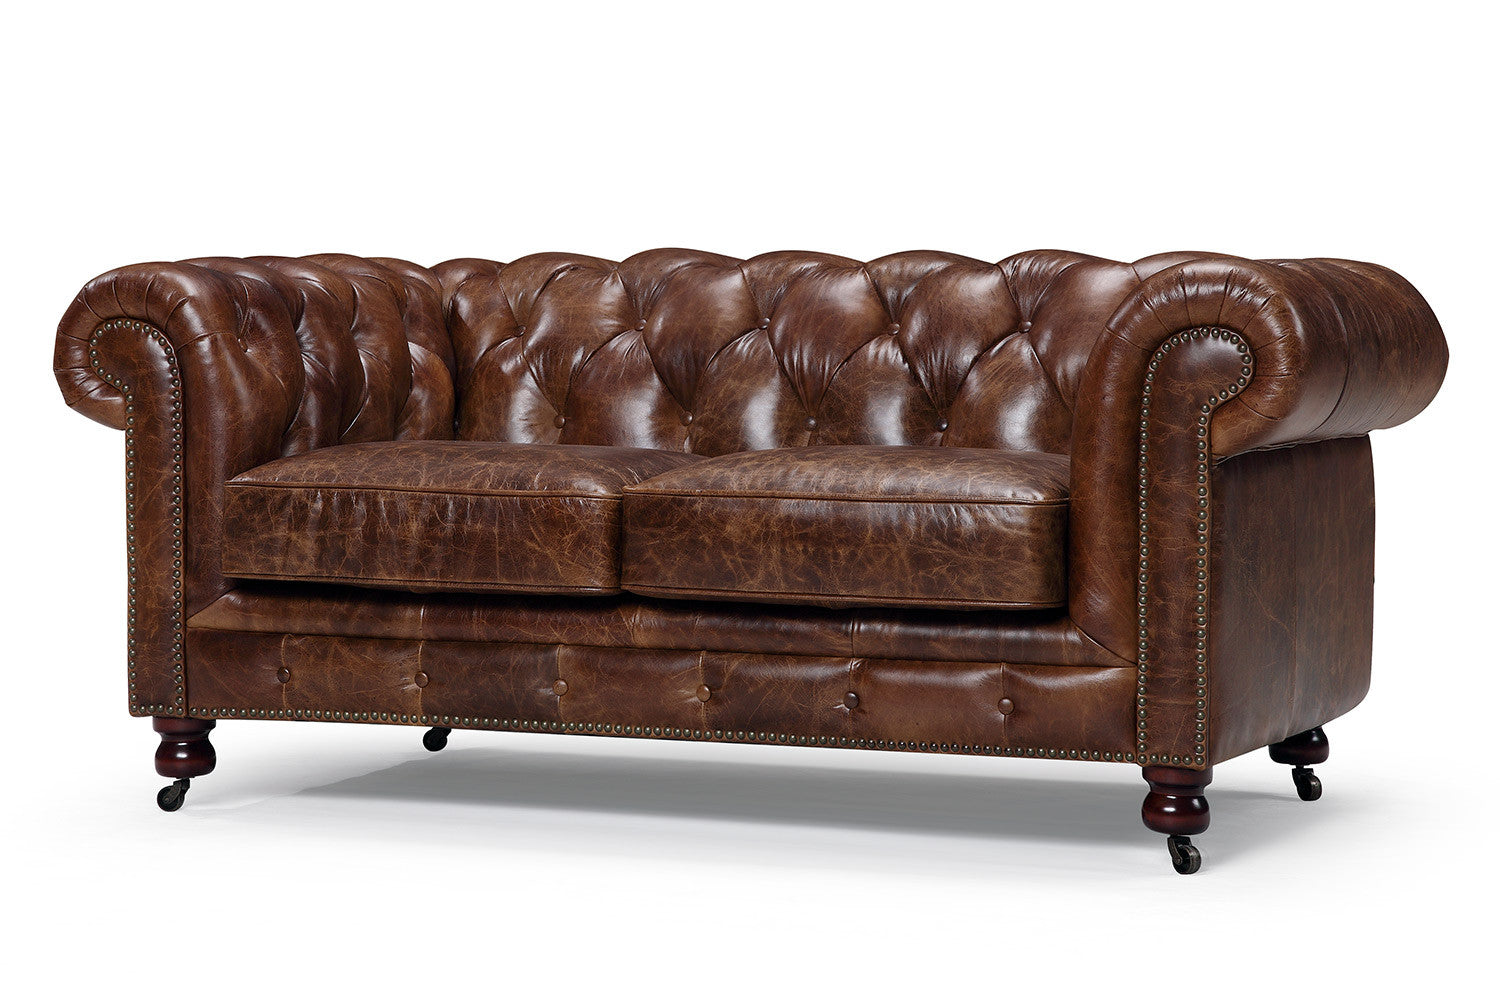 Kensington chesterfield tufted sofa by rose moore autos post for Dictionary canape